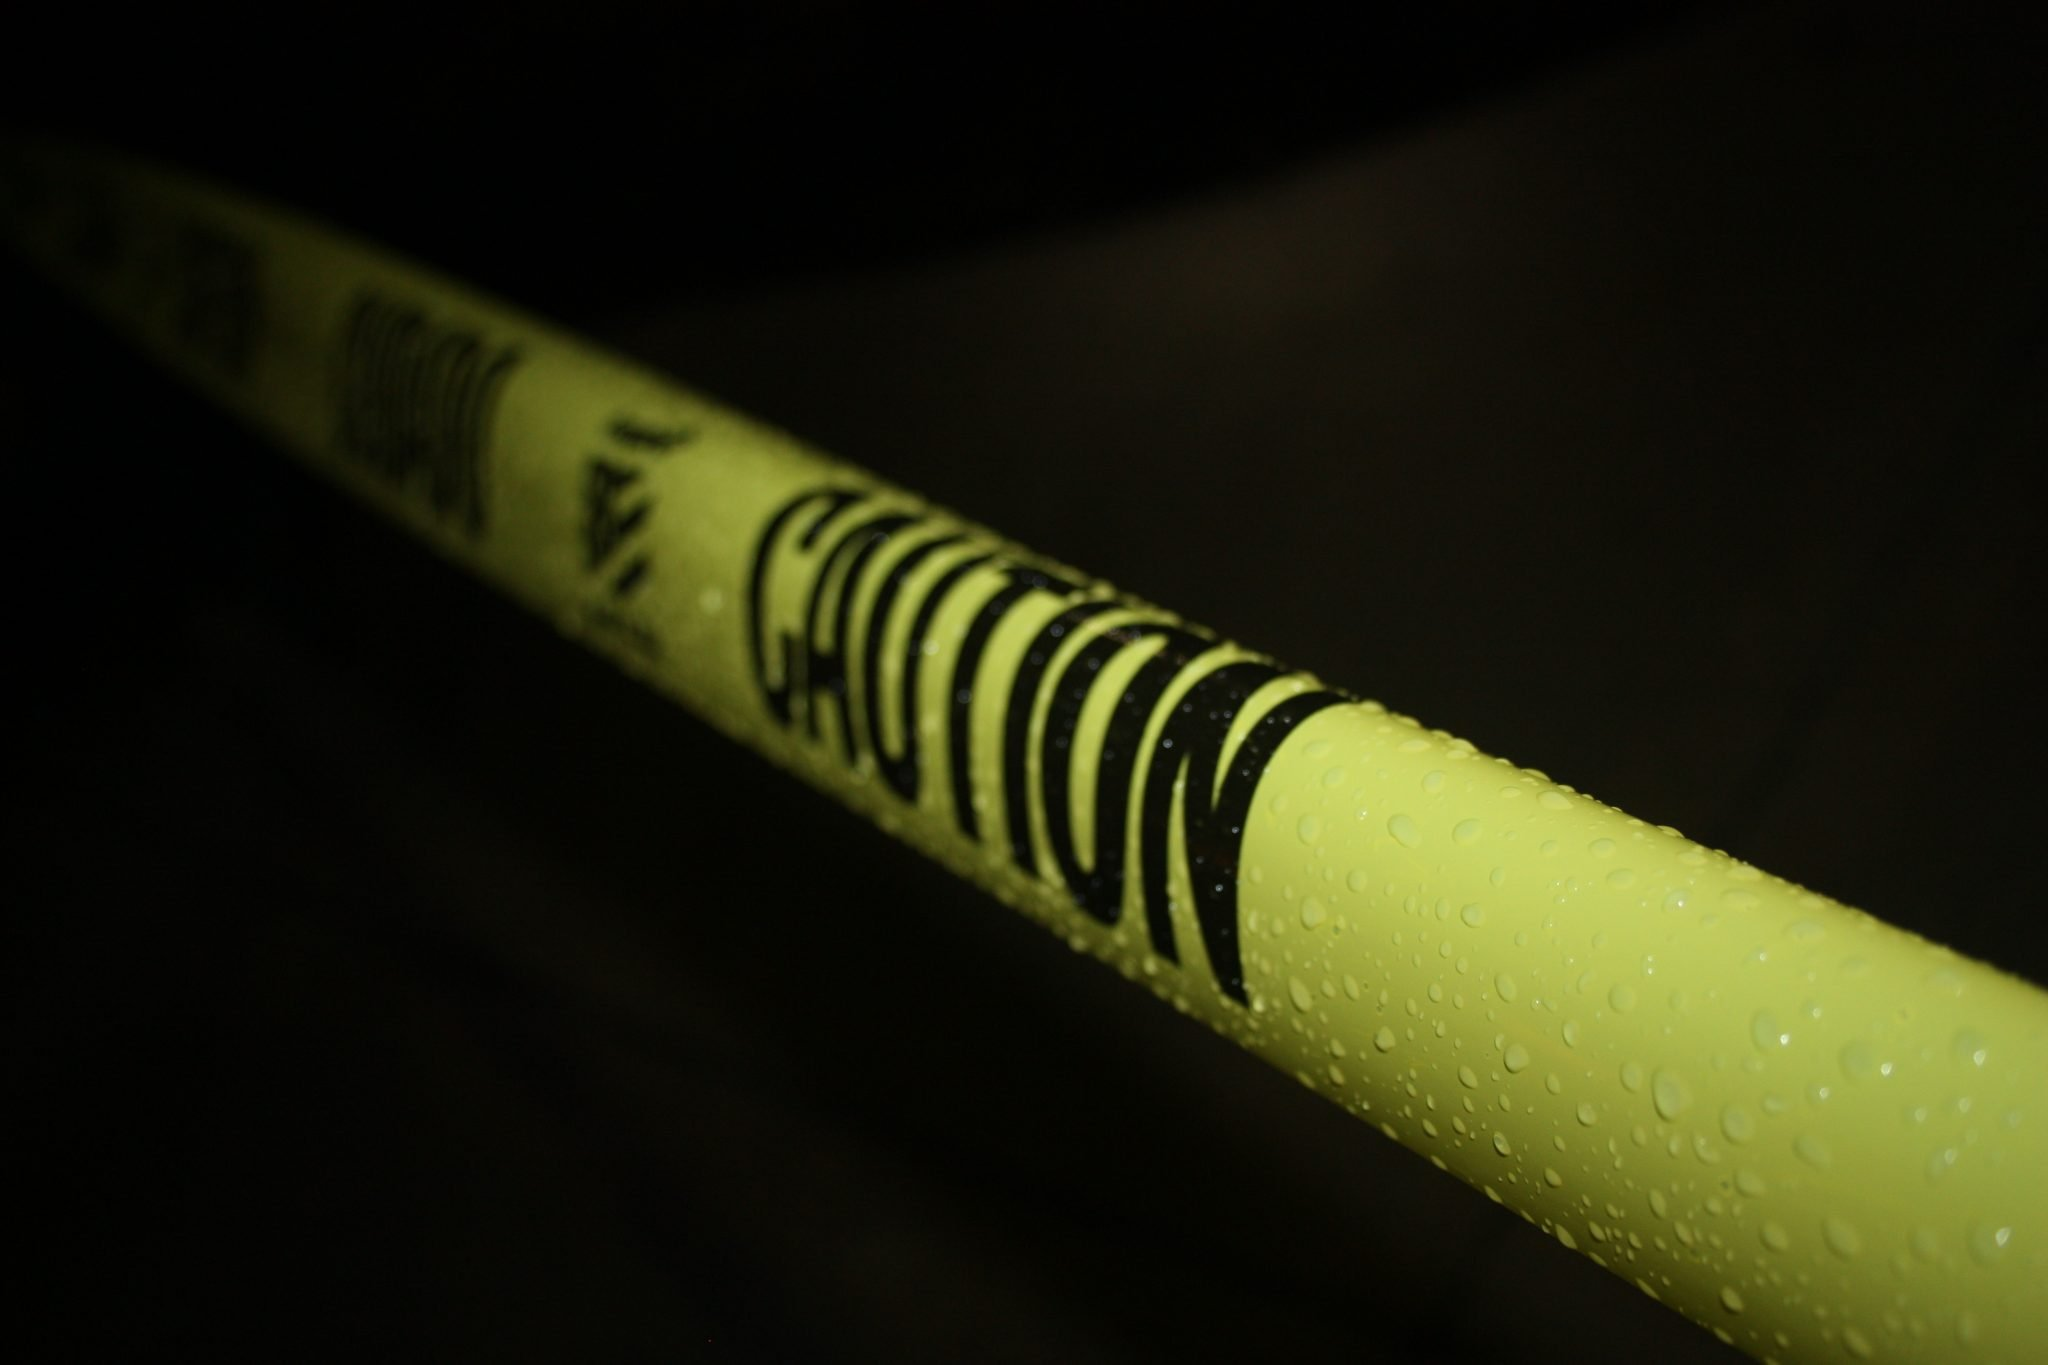 Caution tape on a black background